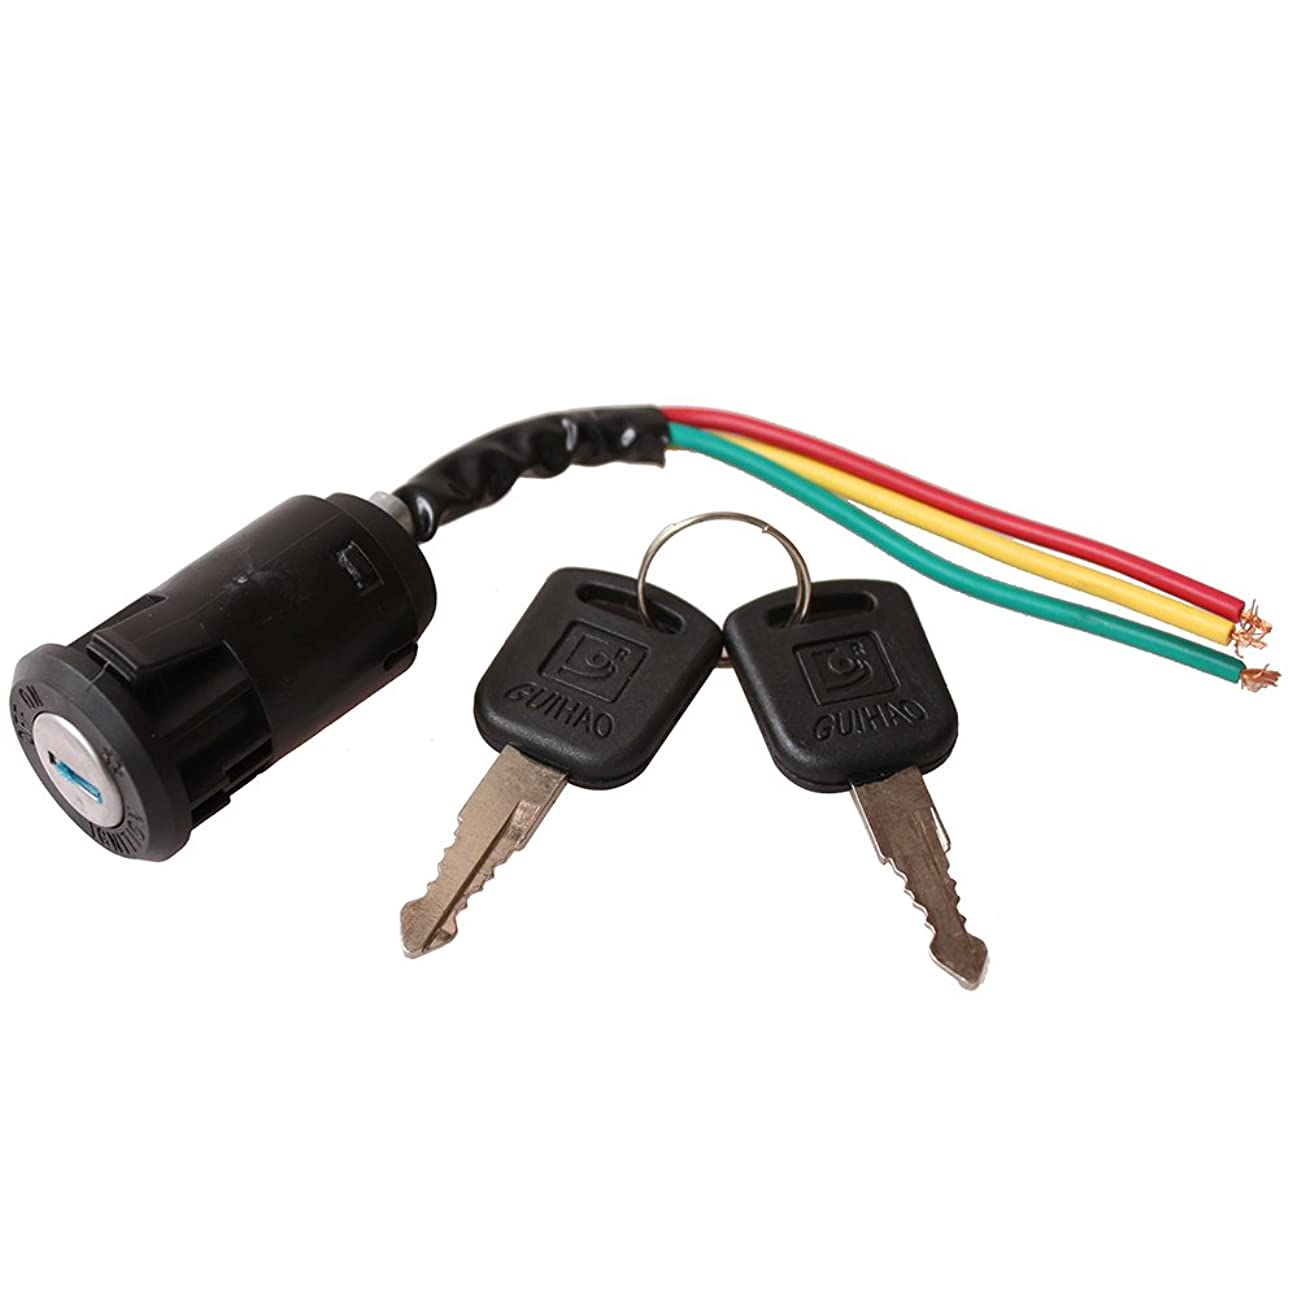 GOOFIT 3 Wire Ignition Switch Key for 50cc 70cc 90cc 110cc 150cc 200cc 250cc Go Kart Dune Buggy Buggies ATV & Dirt Bike Parts